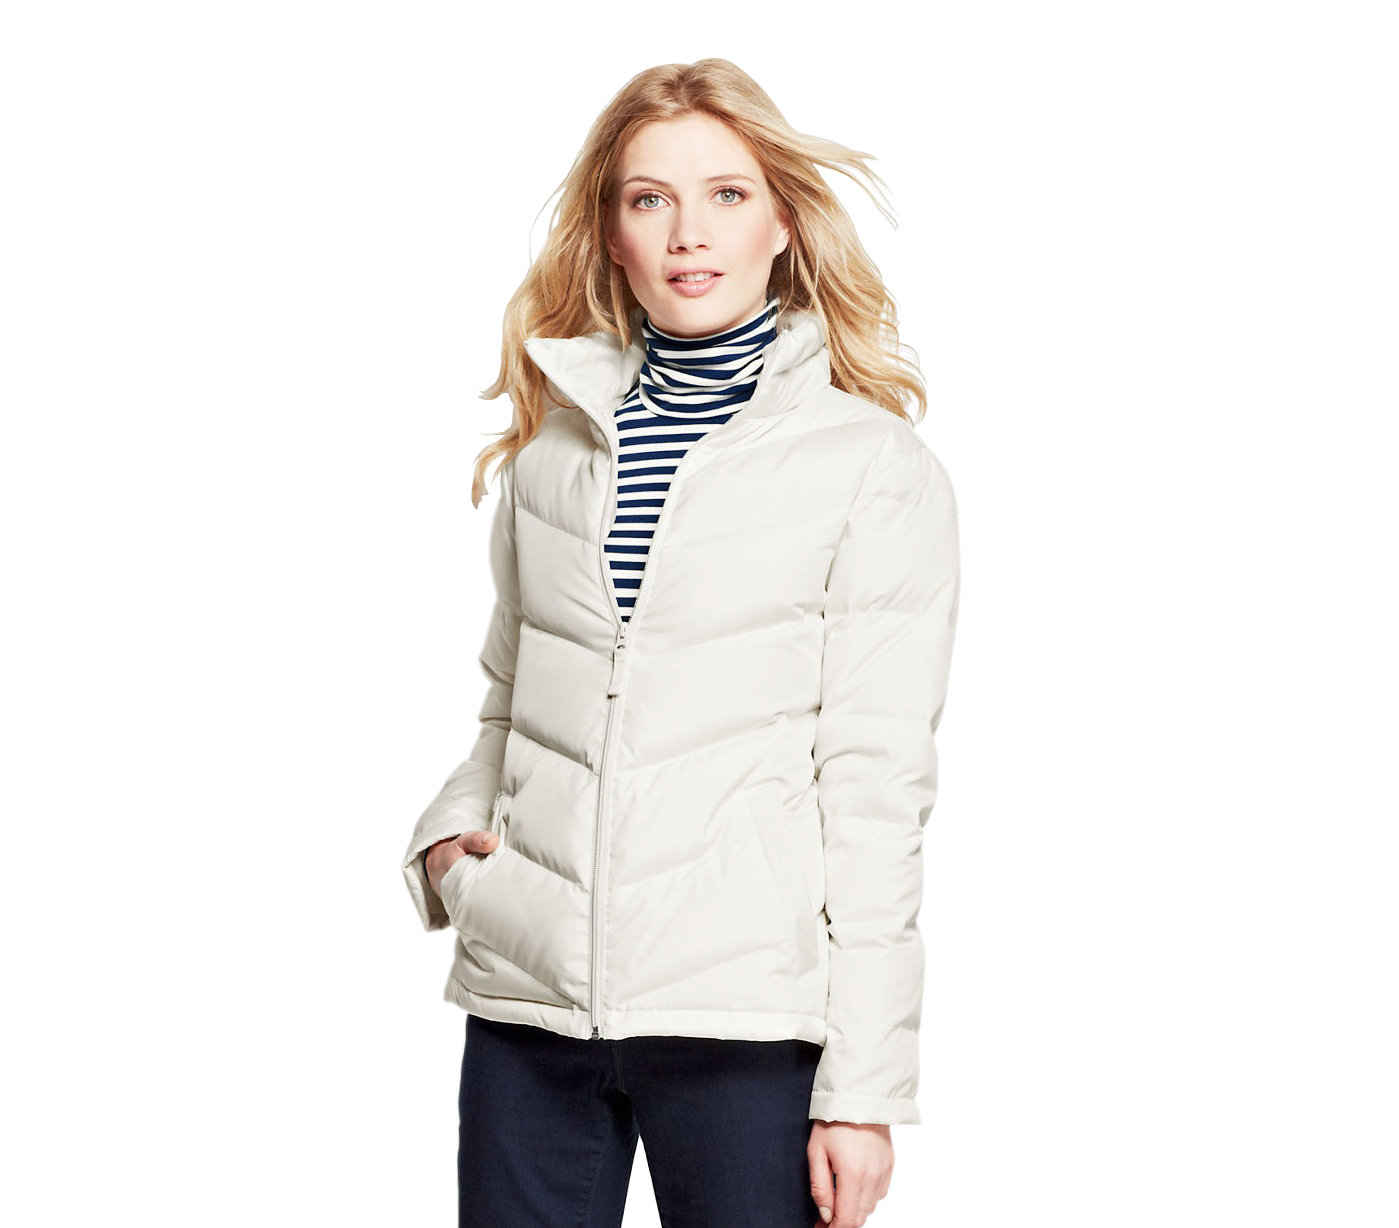 Lands' End Women's Down Jacket | 6 Affordable Down Jackets | Real